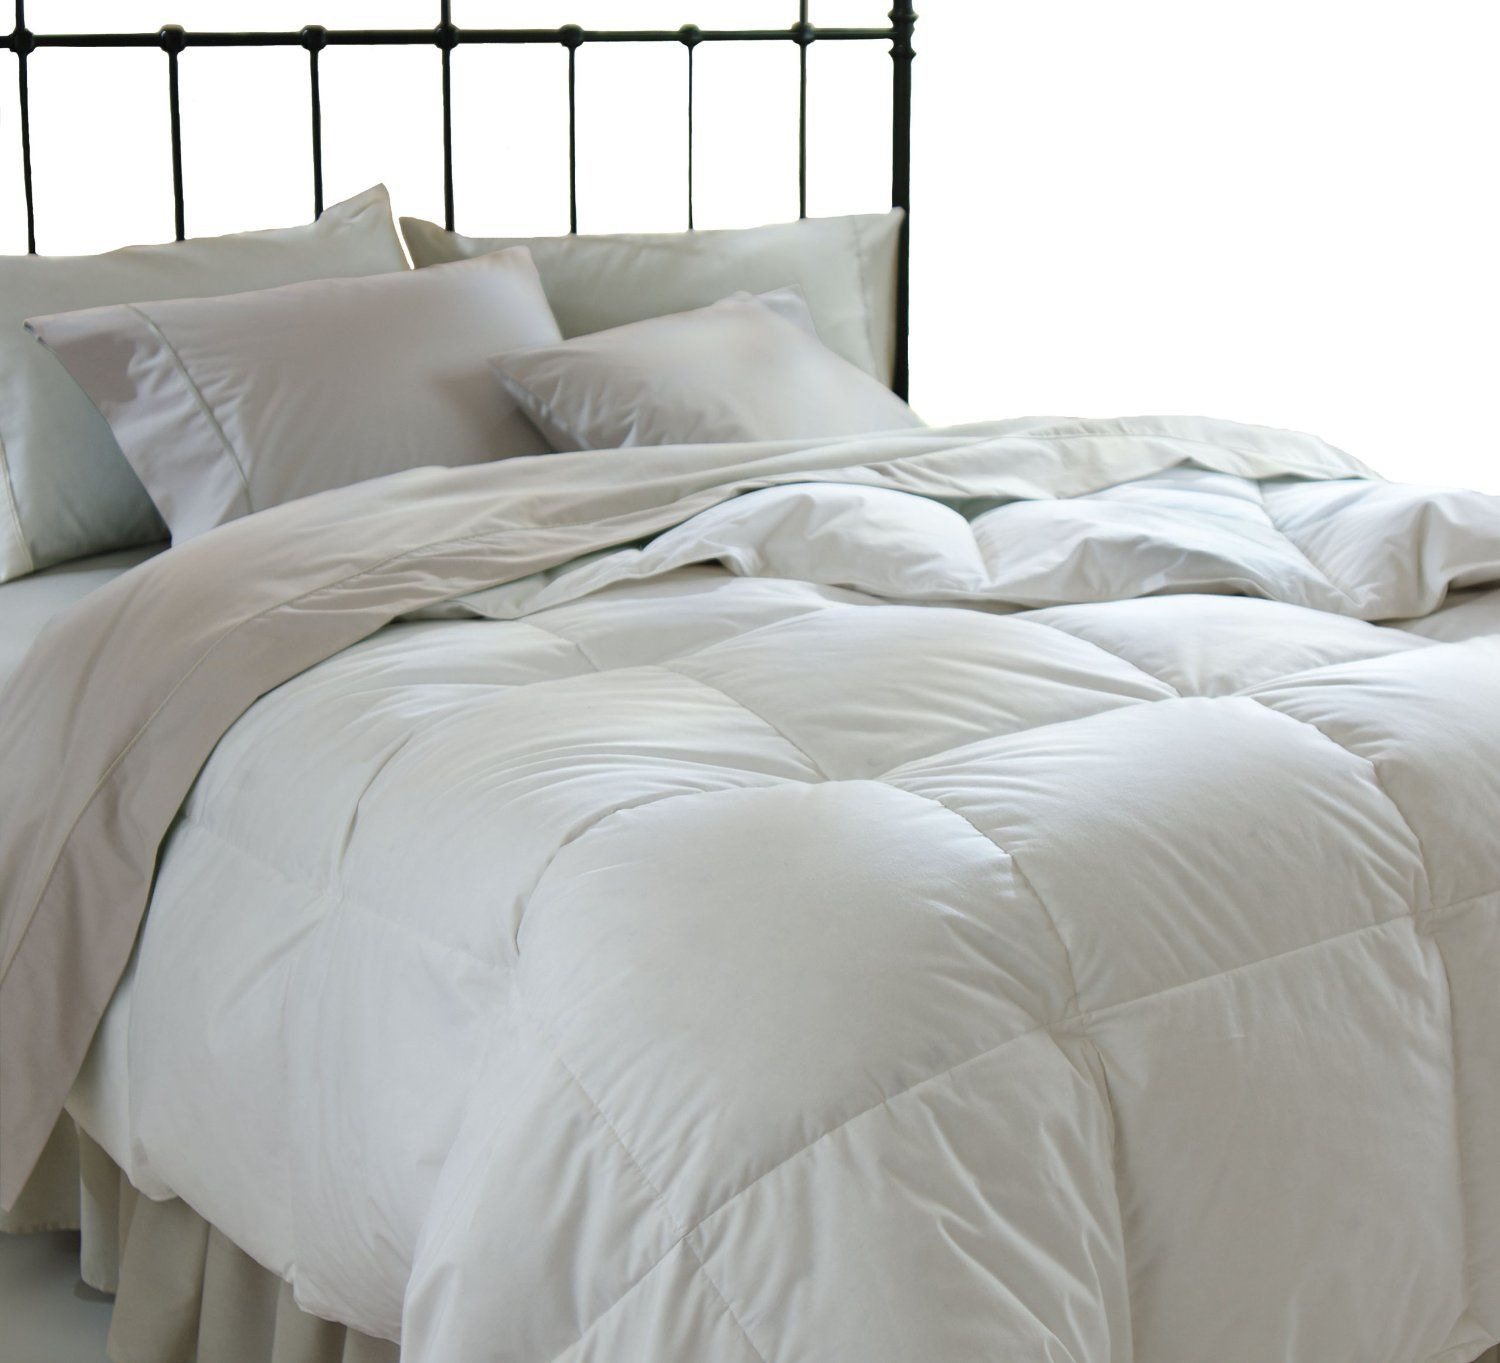 watch ikea review comforter down rosecose fill count goose cotton thread luxurious shell